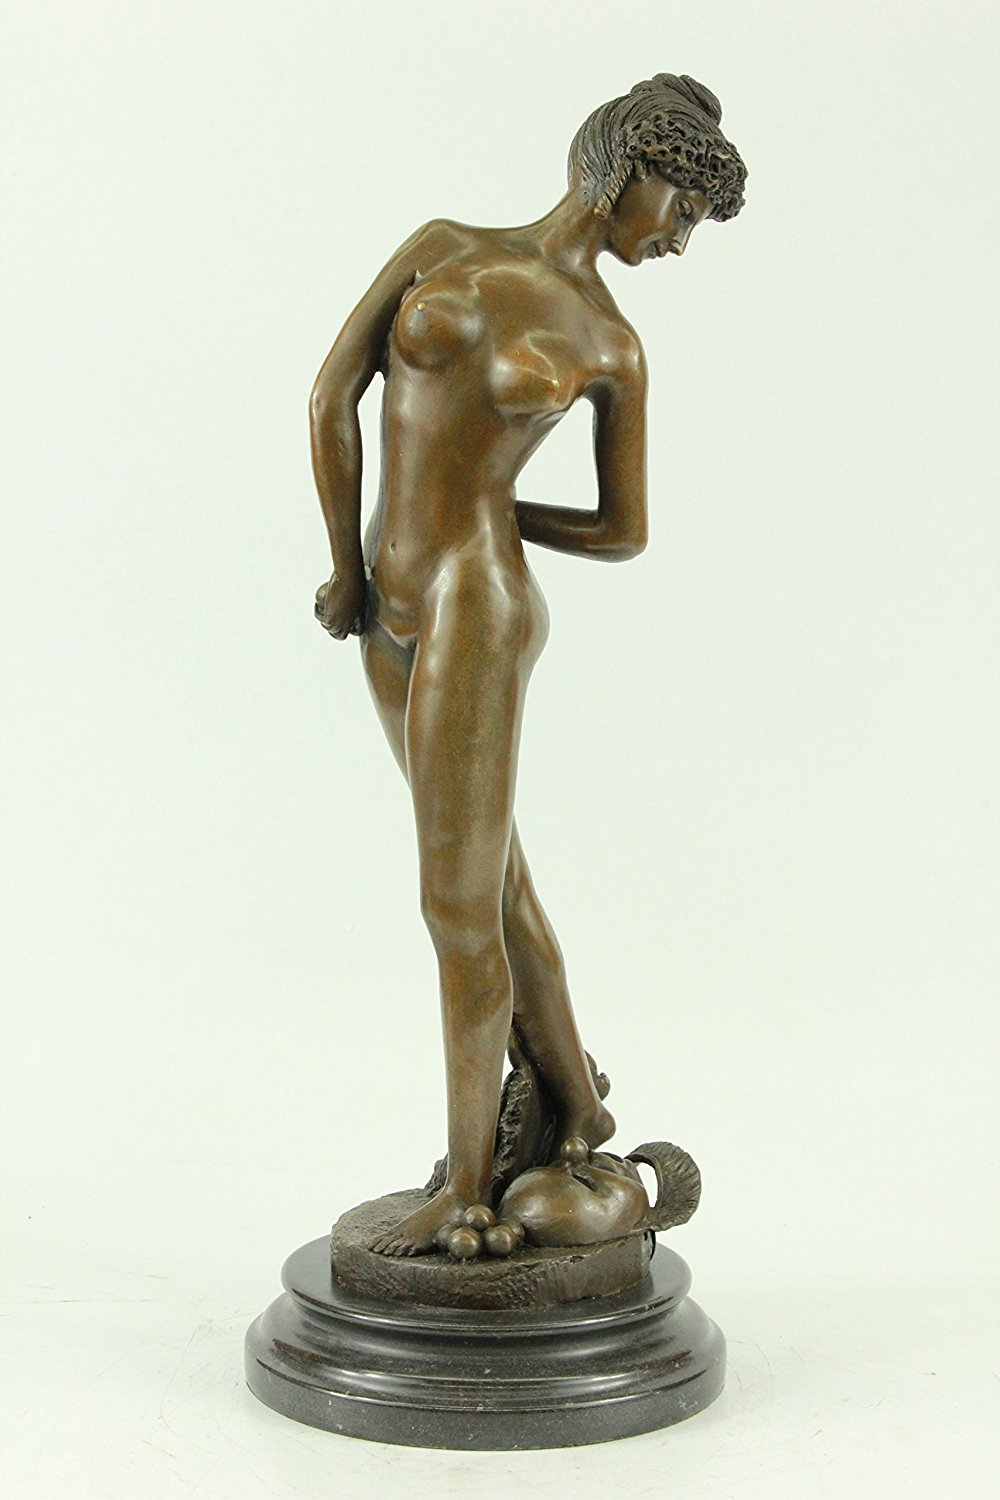 "...Handmade...European Bronze Sculpture Signed Gerome ""The Ballplayer"" Nude Girl (1X-DS-254) Bronze Sculpture Statues Figurine Nude Office & Home Décor Collectibles Sale Deal Gifts"